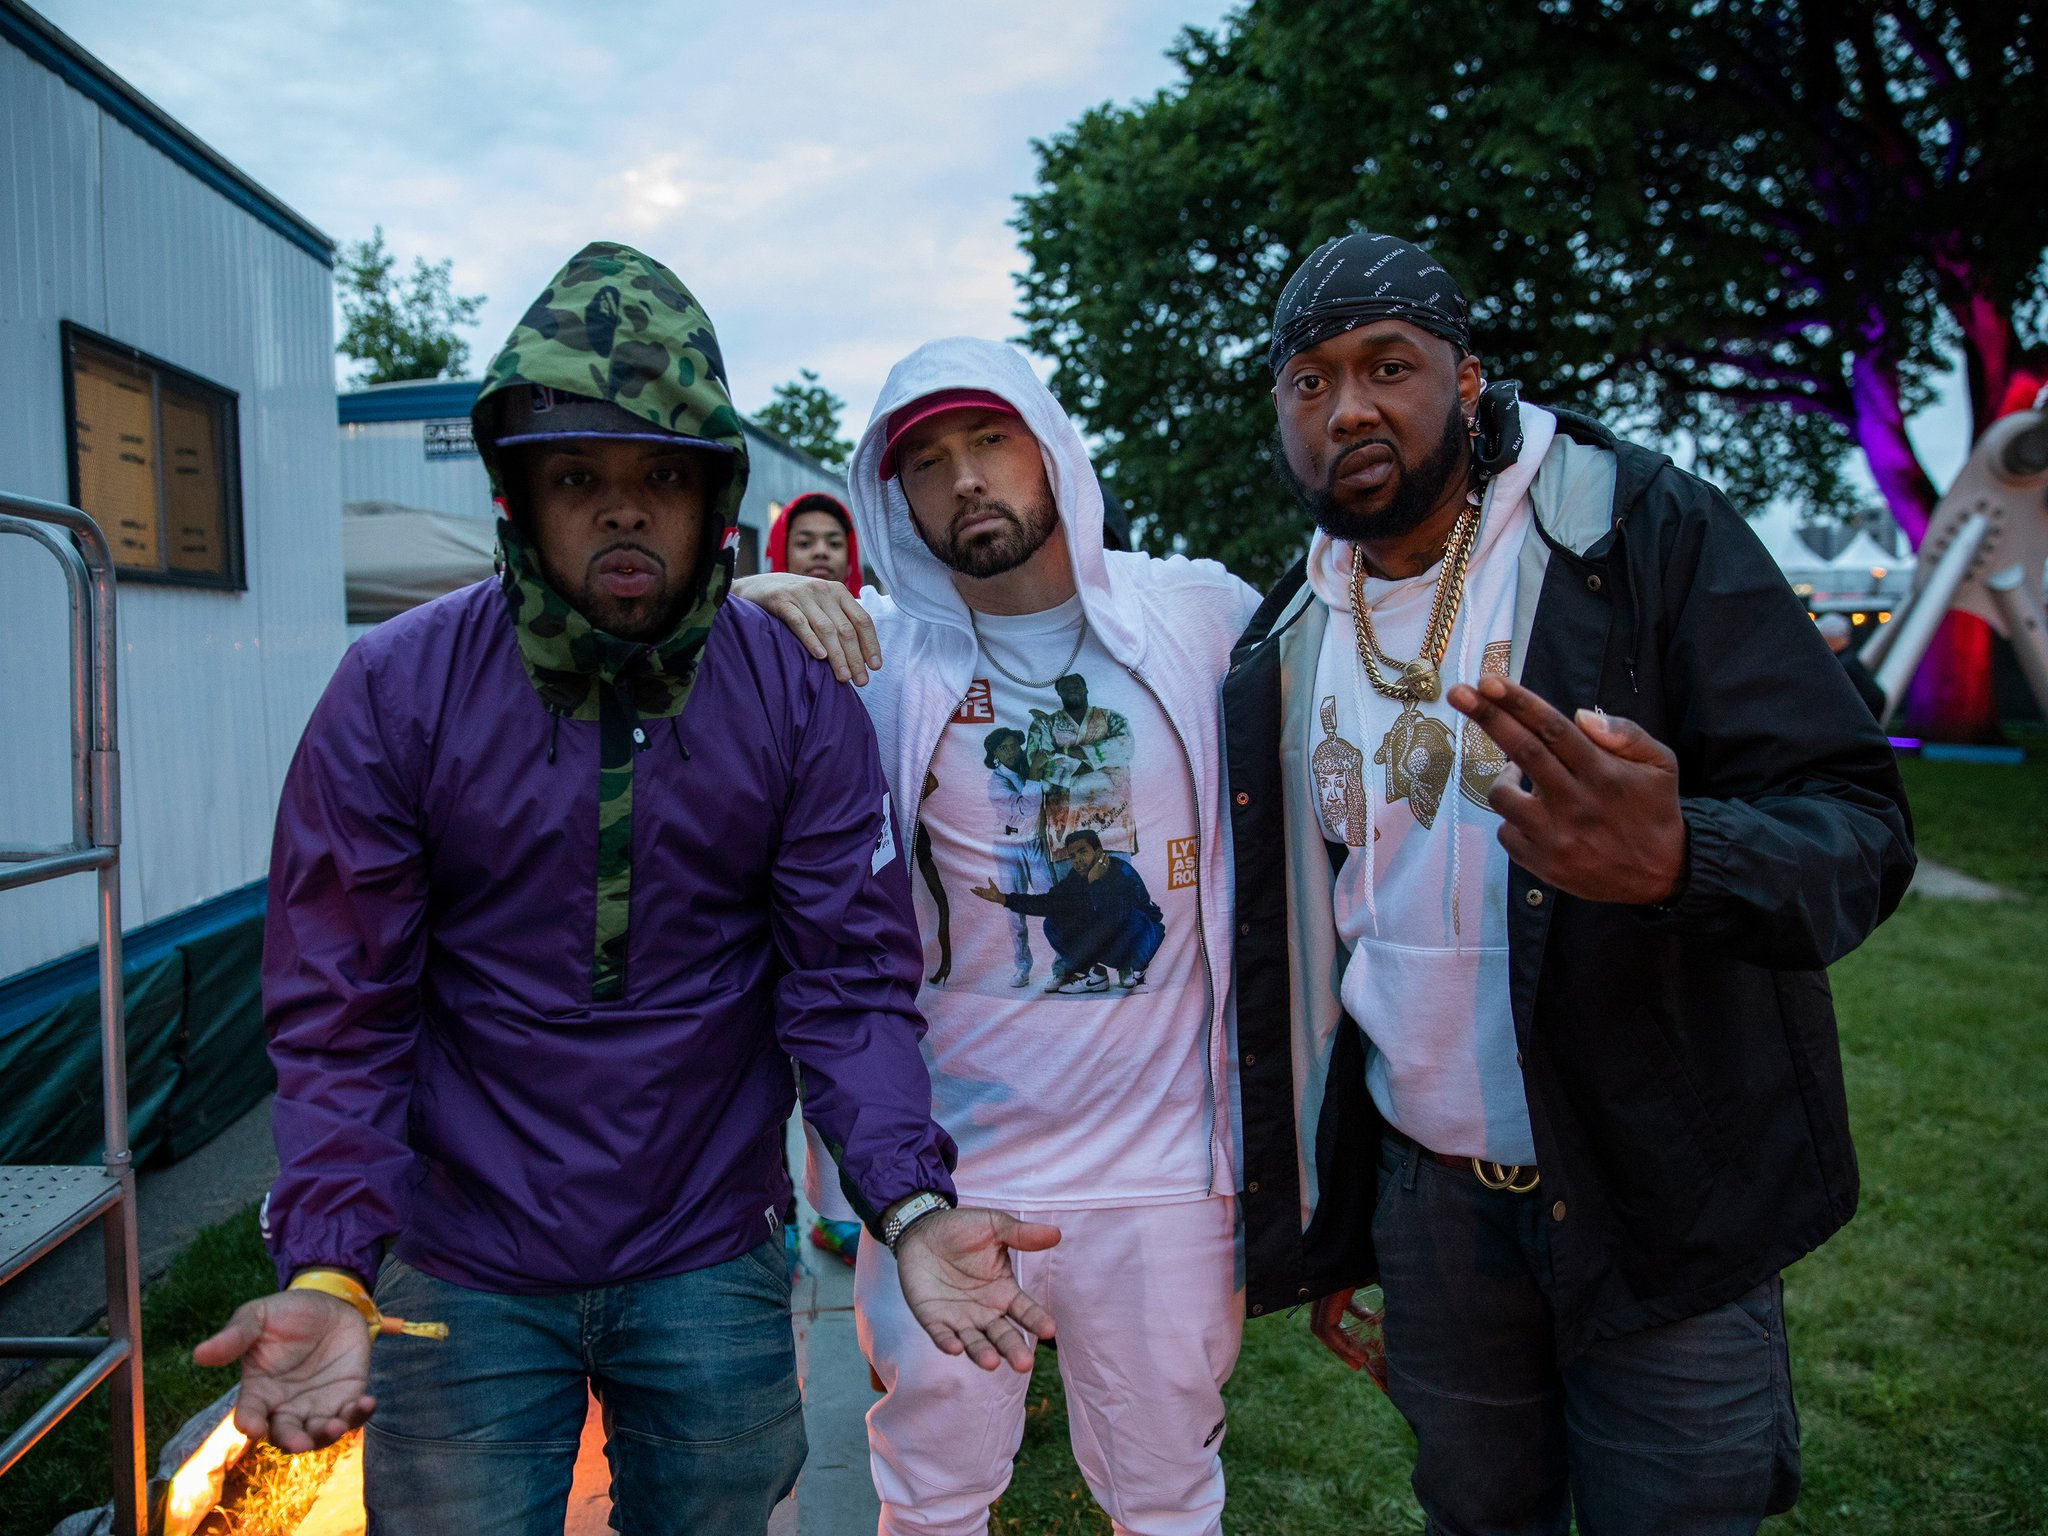 westside-gunn-eminem-conway-governors-ball-nyc-2018